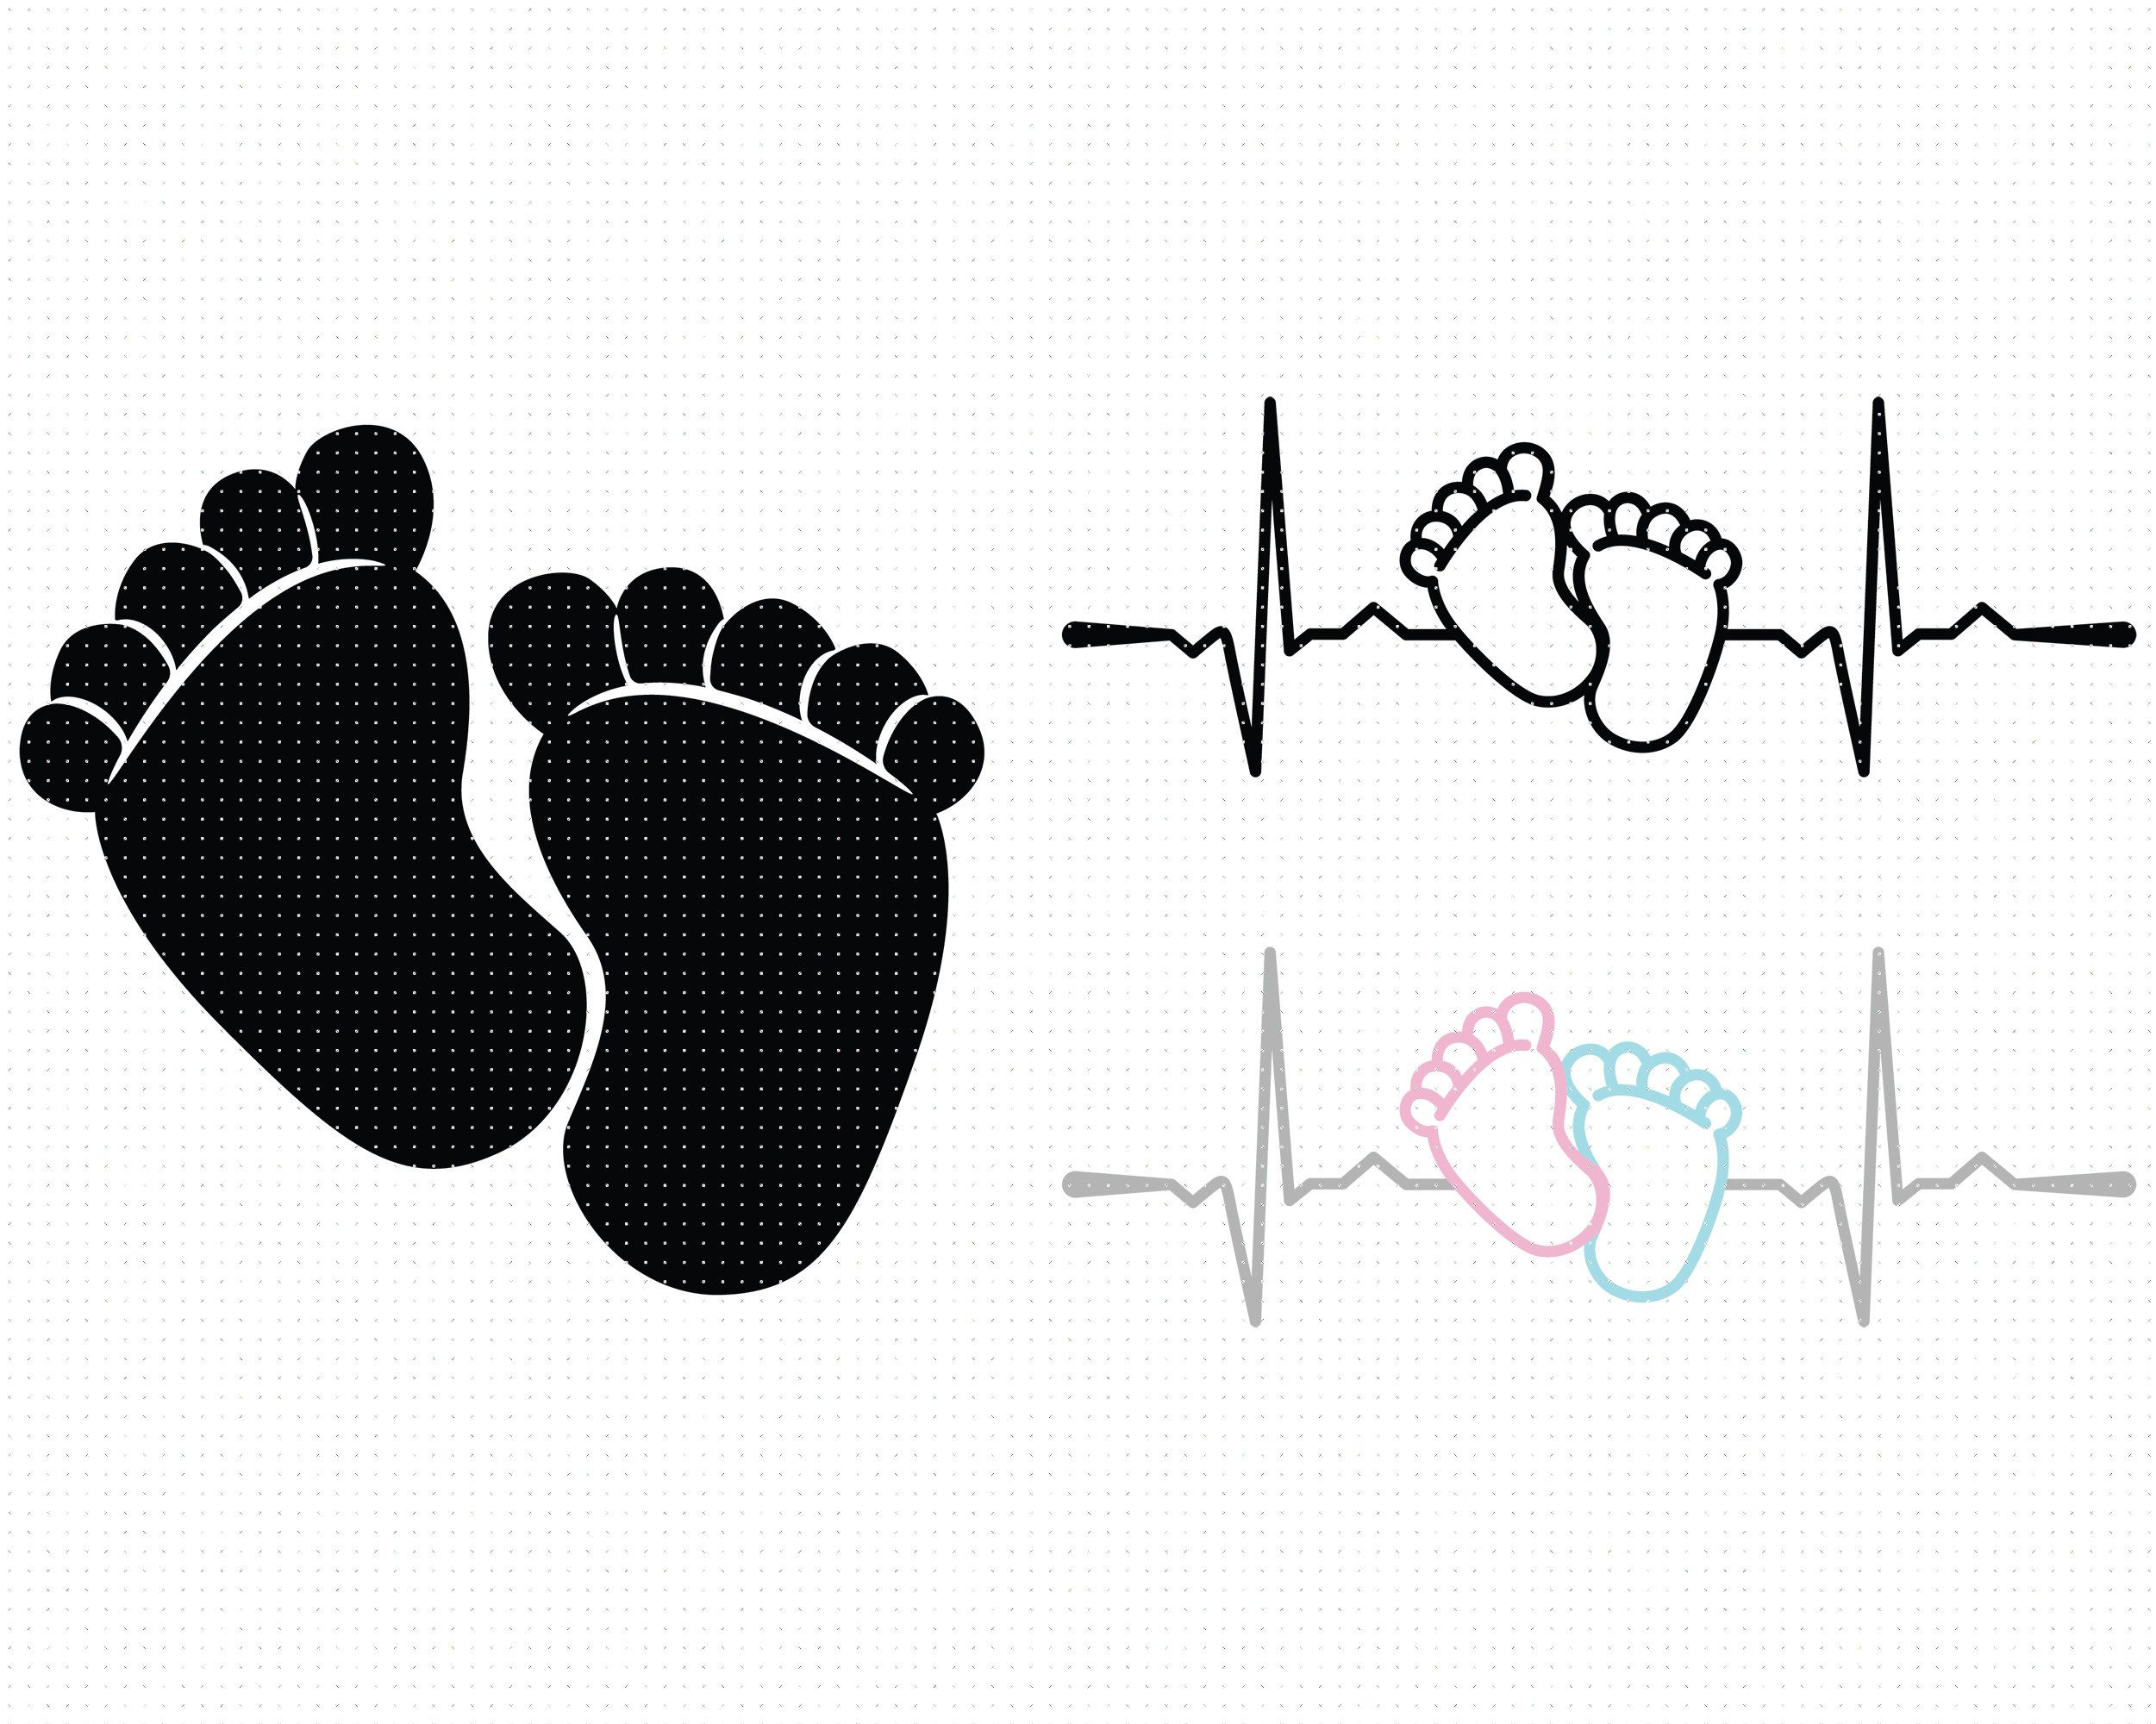 Baby Footprint Svg Baby Feet Svg Baby Footprint Silhouette Baby Svg Newborn Svg Footprint Svg Baby Foot Svg Tiny Feet Heartbeat Svg Vozeli Com